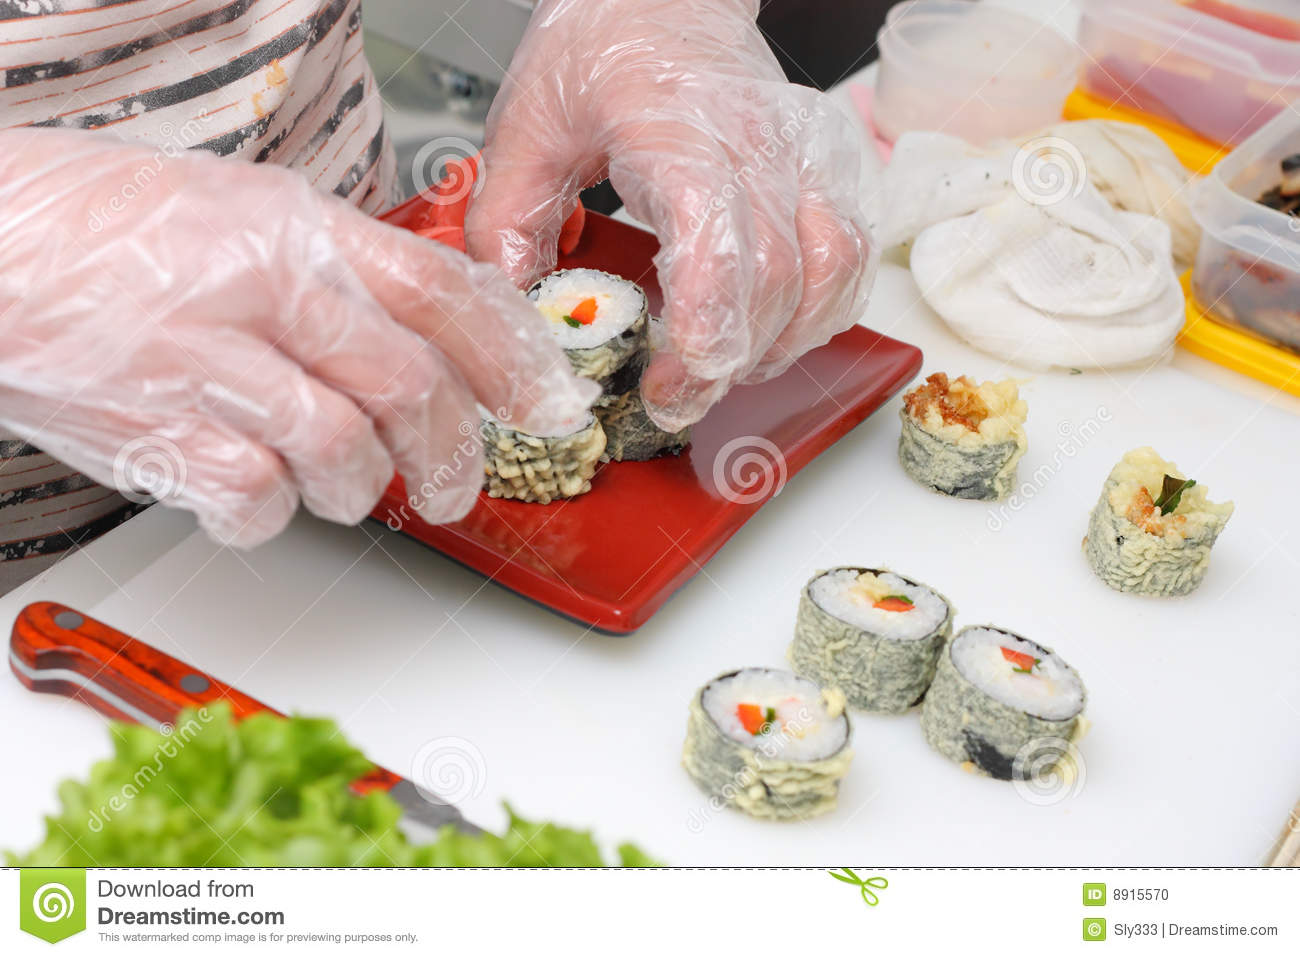 Cook in the kitchen serving japan susi on plate